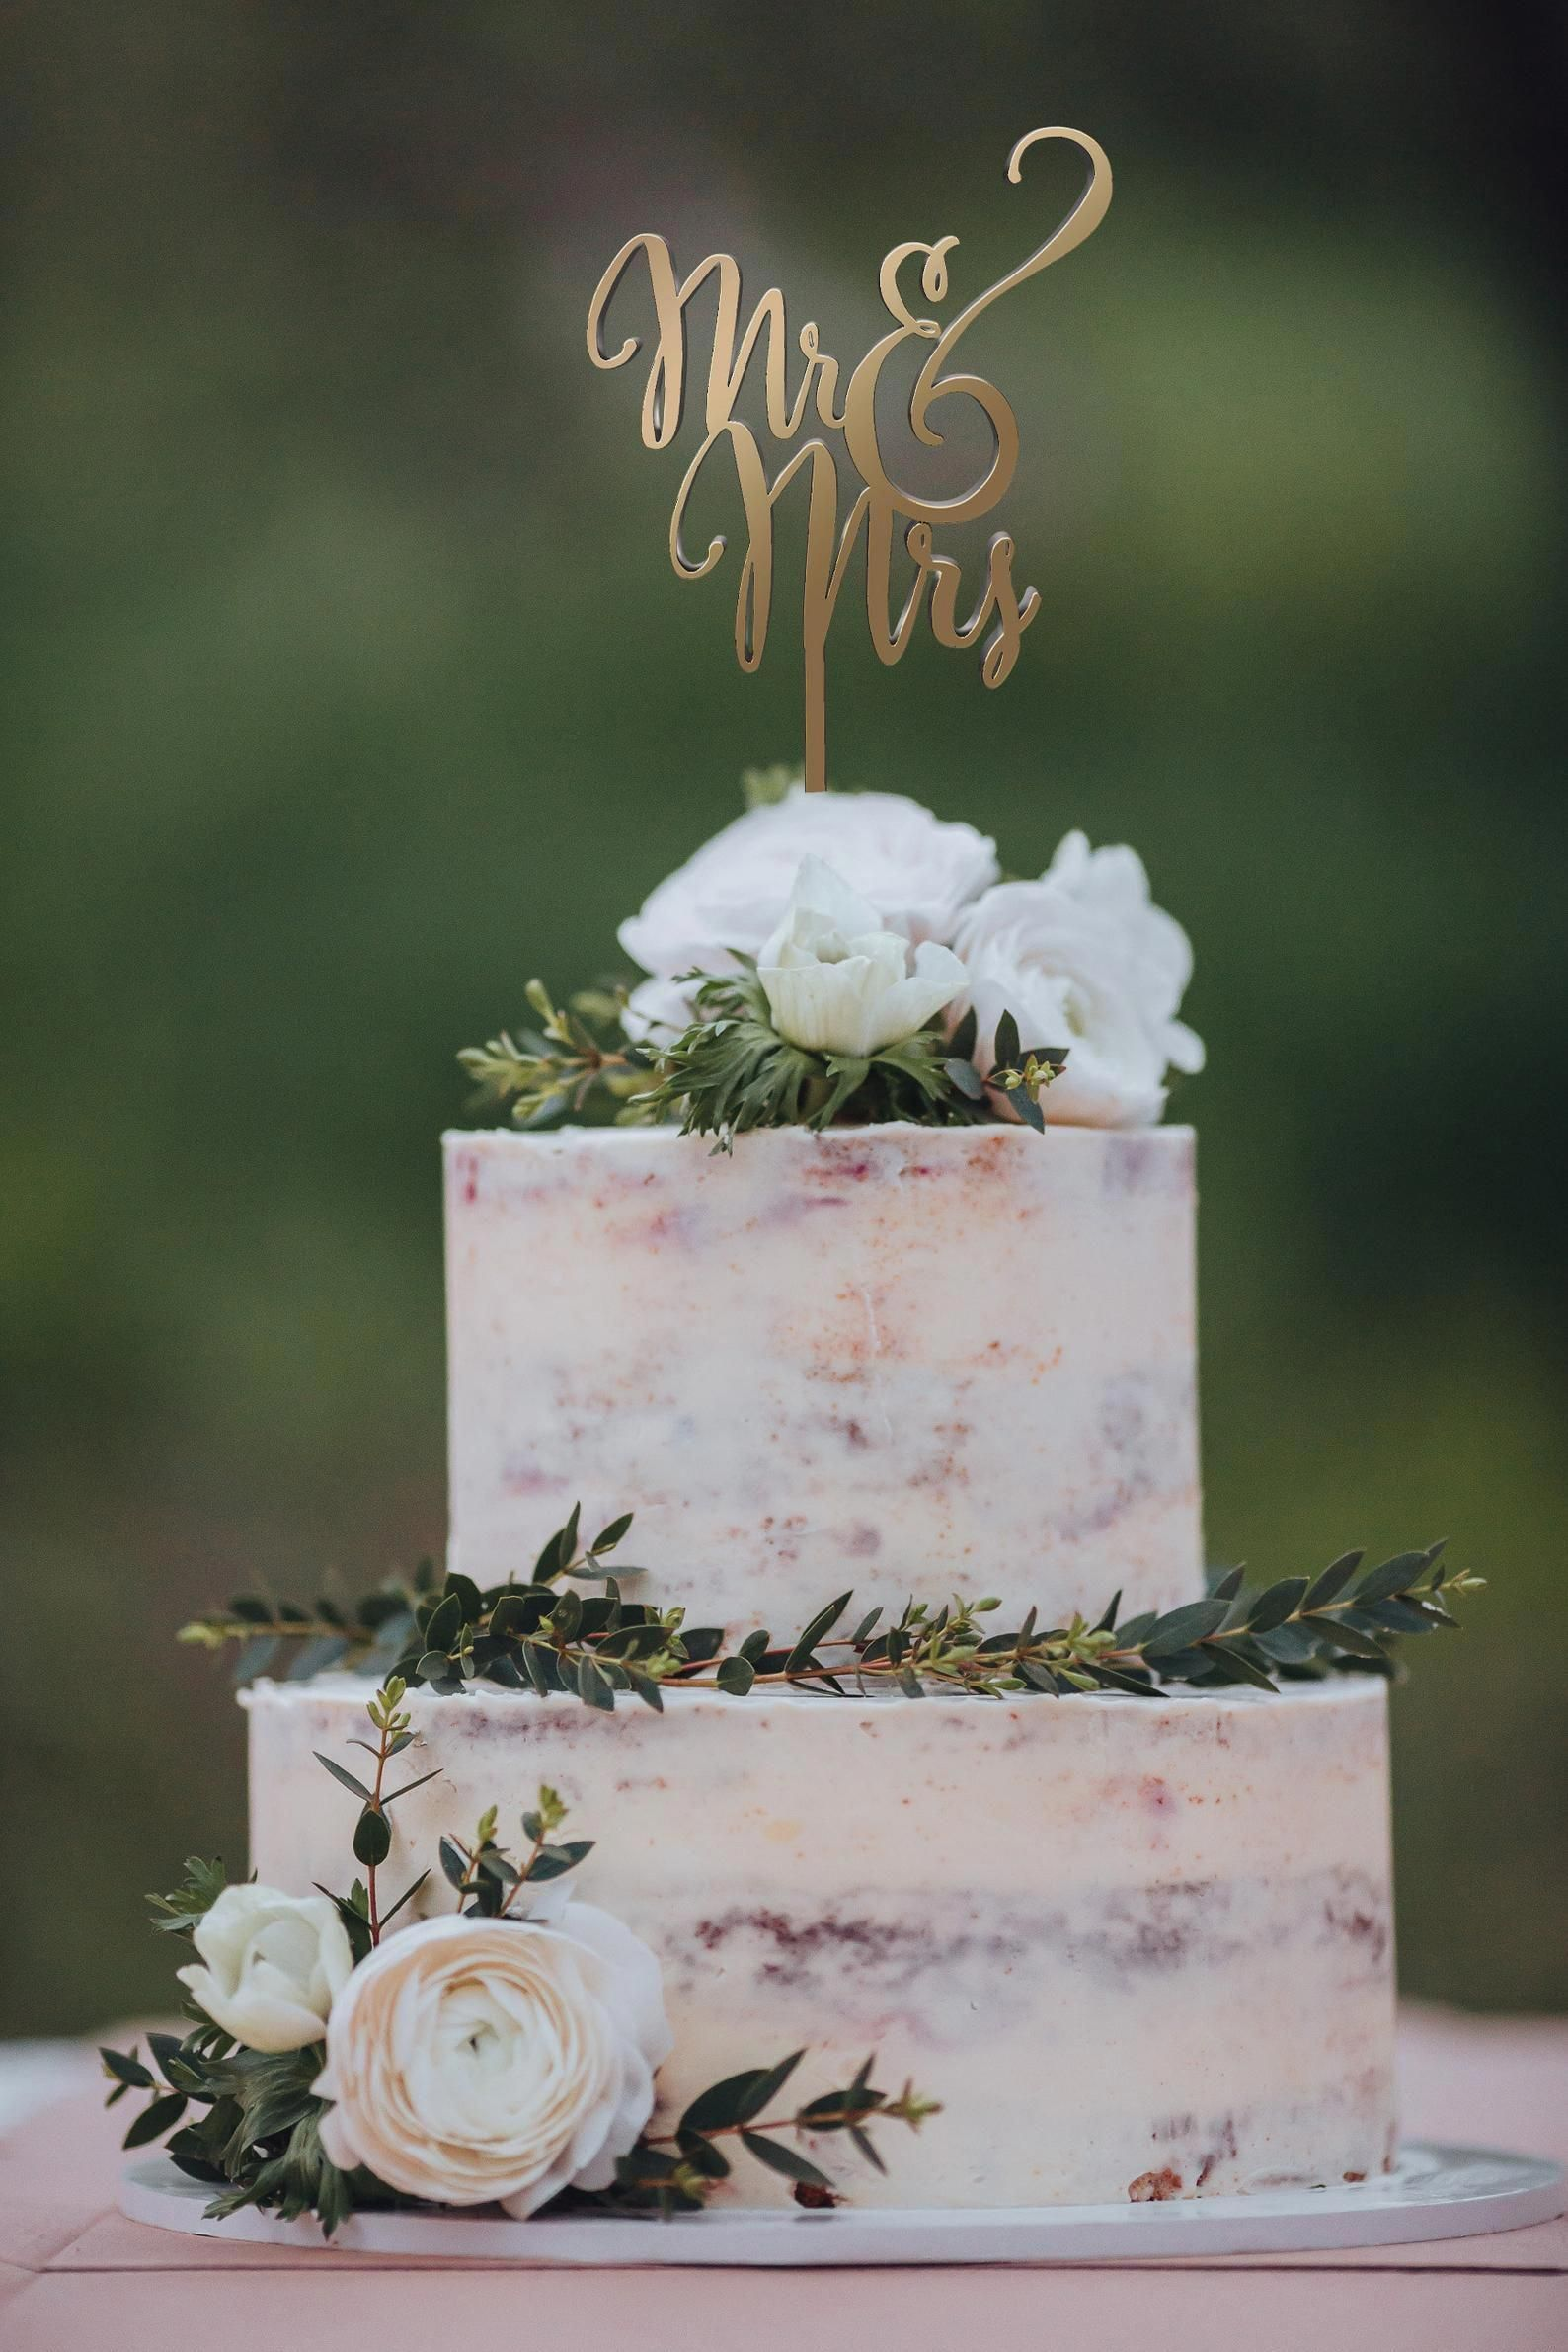 Mr and Mrs Wedding Cake Topper, Rustic Wedding Cak